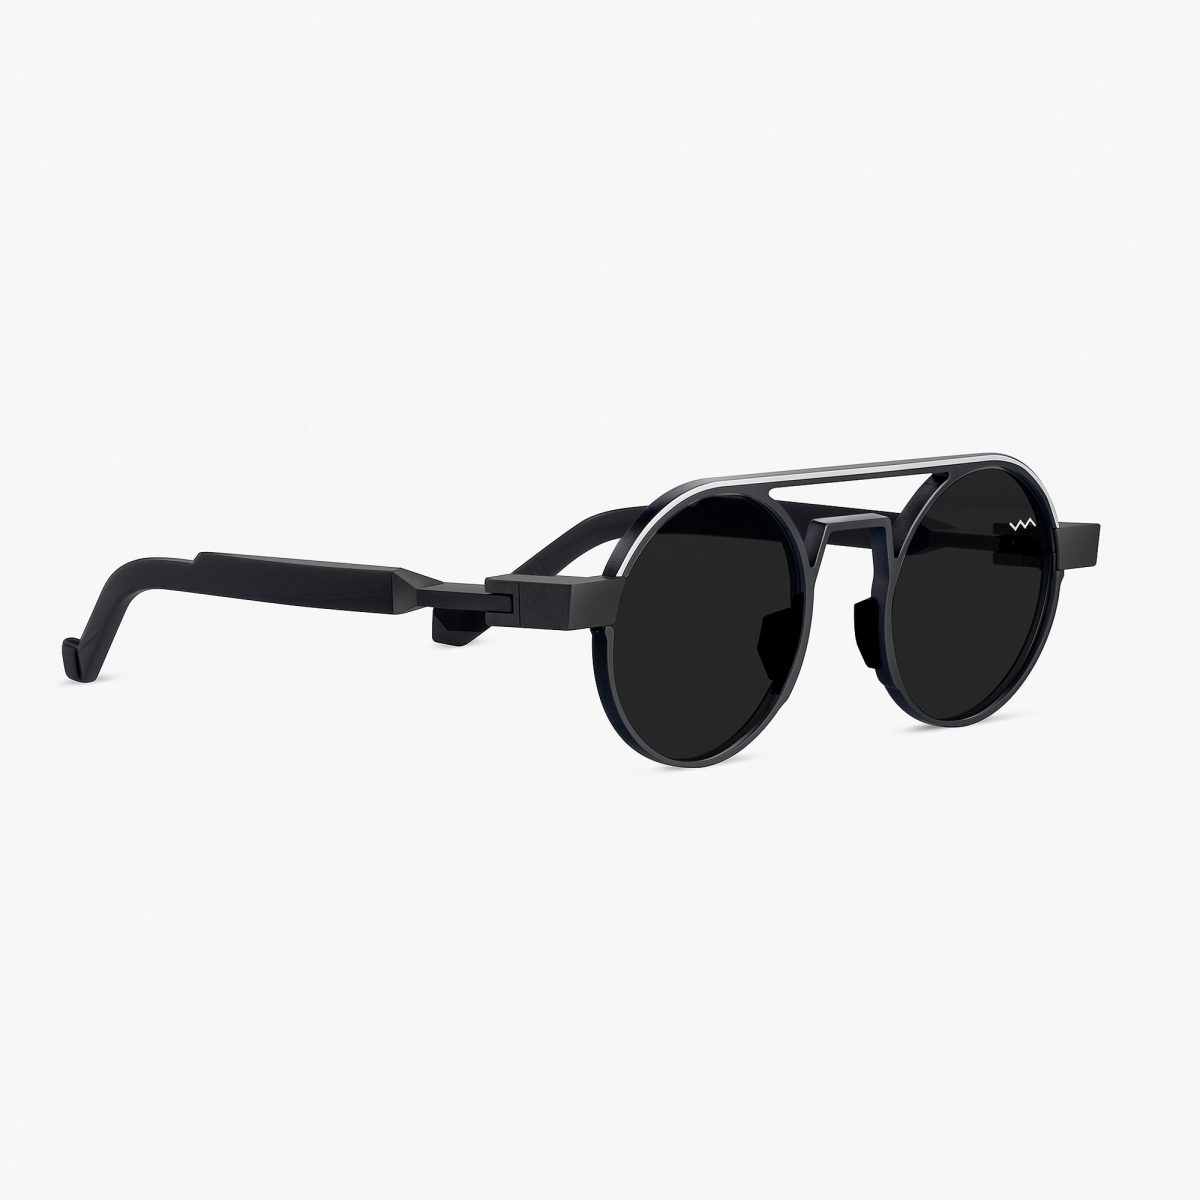 VAVA EYEWEAR ONLINE SHOP WL0023 BLACK SIDE